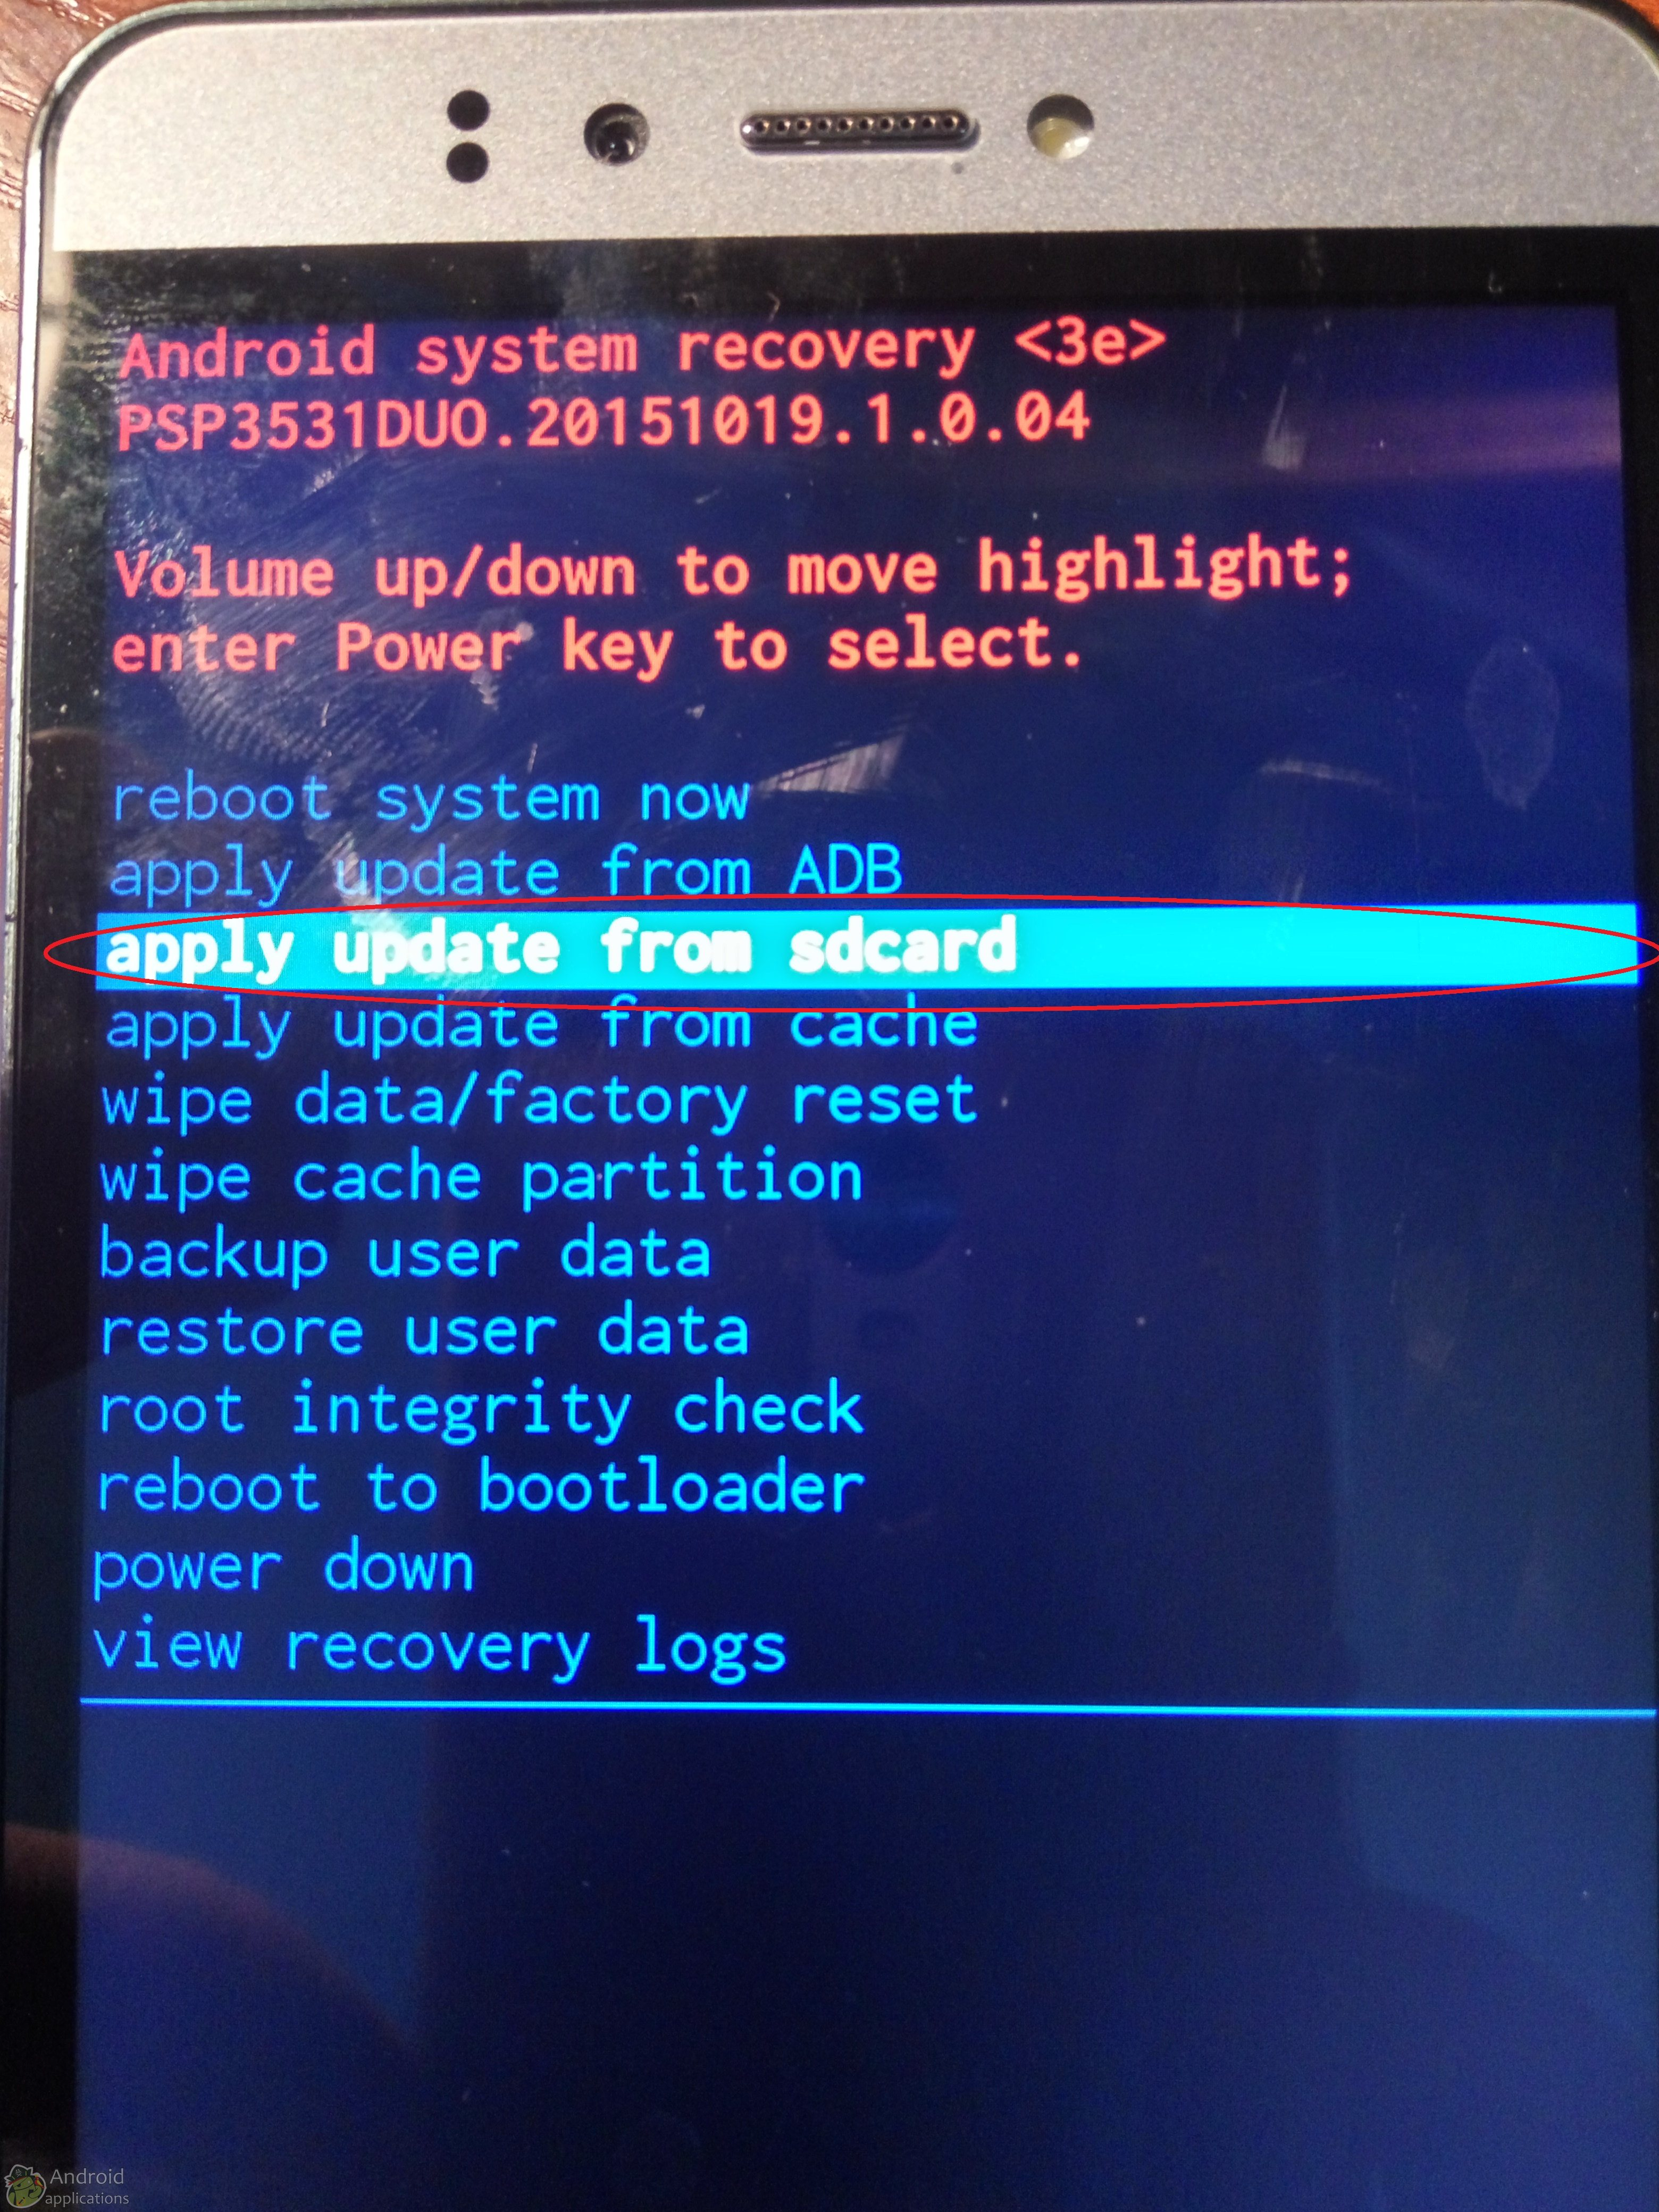 Android system recovery 3e: инструкция на русском языке